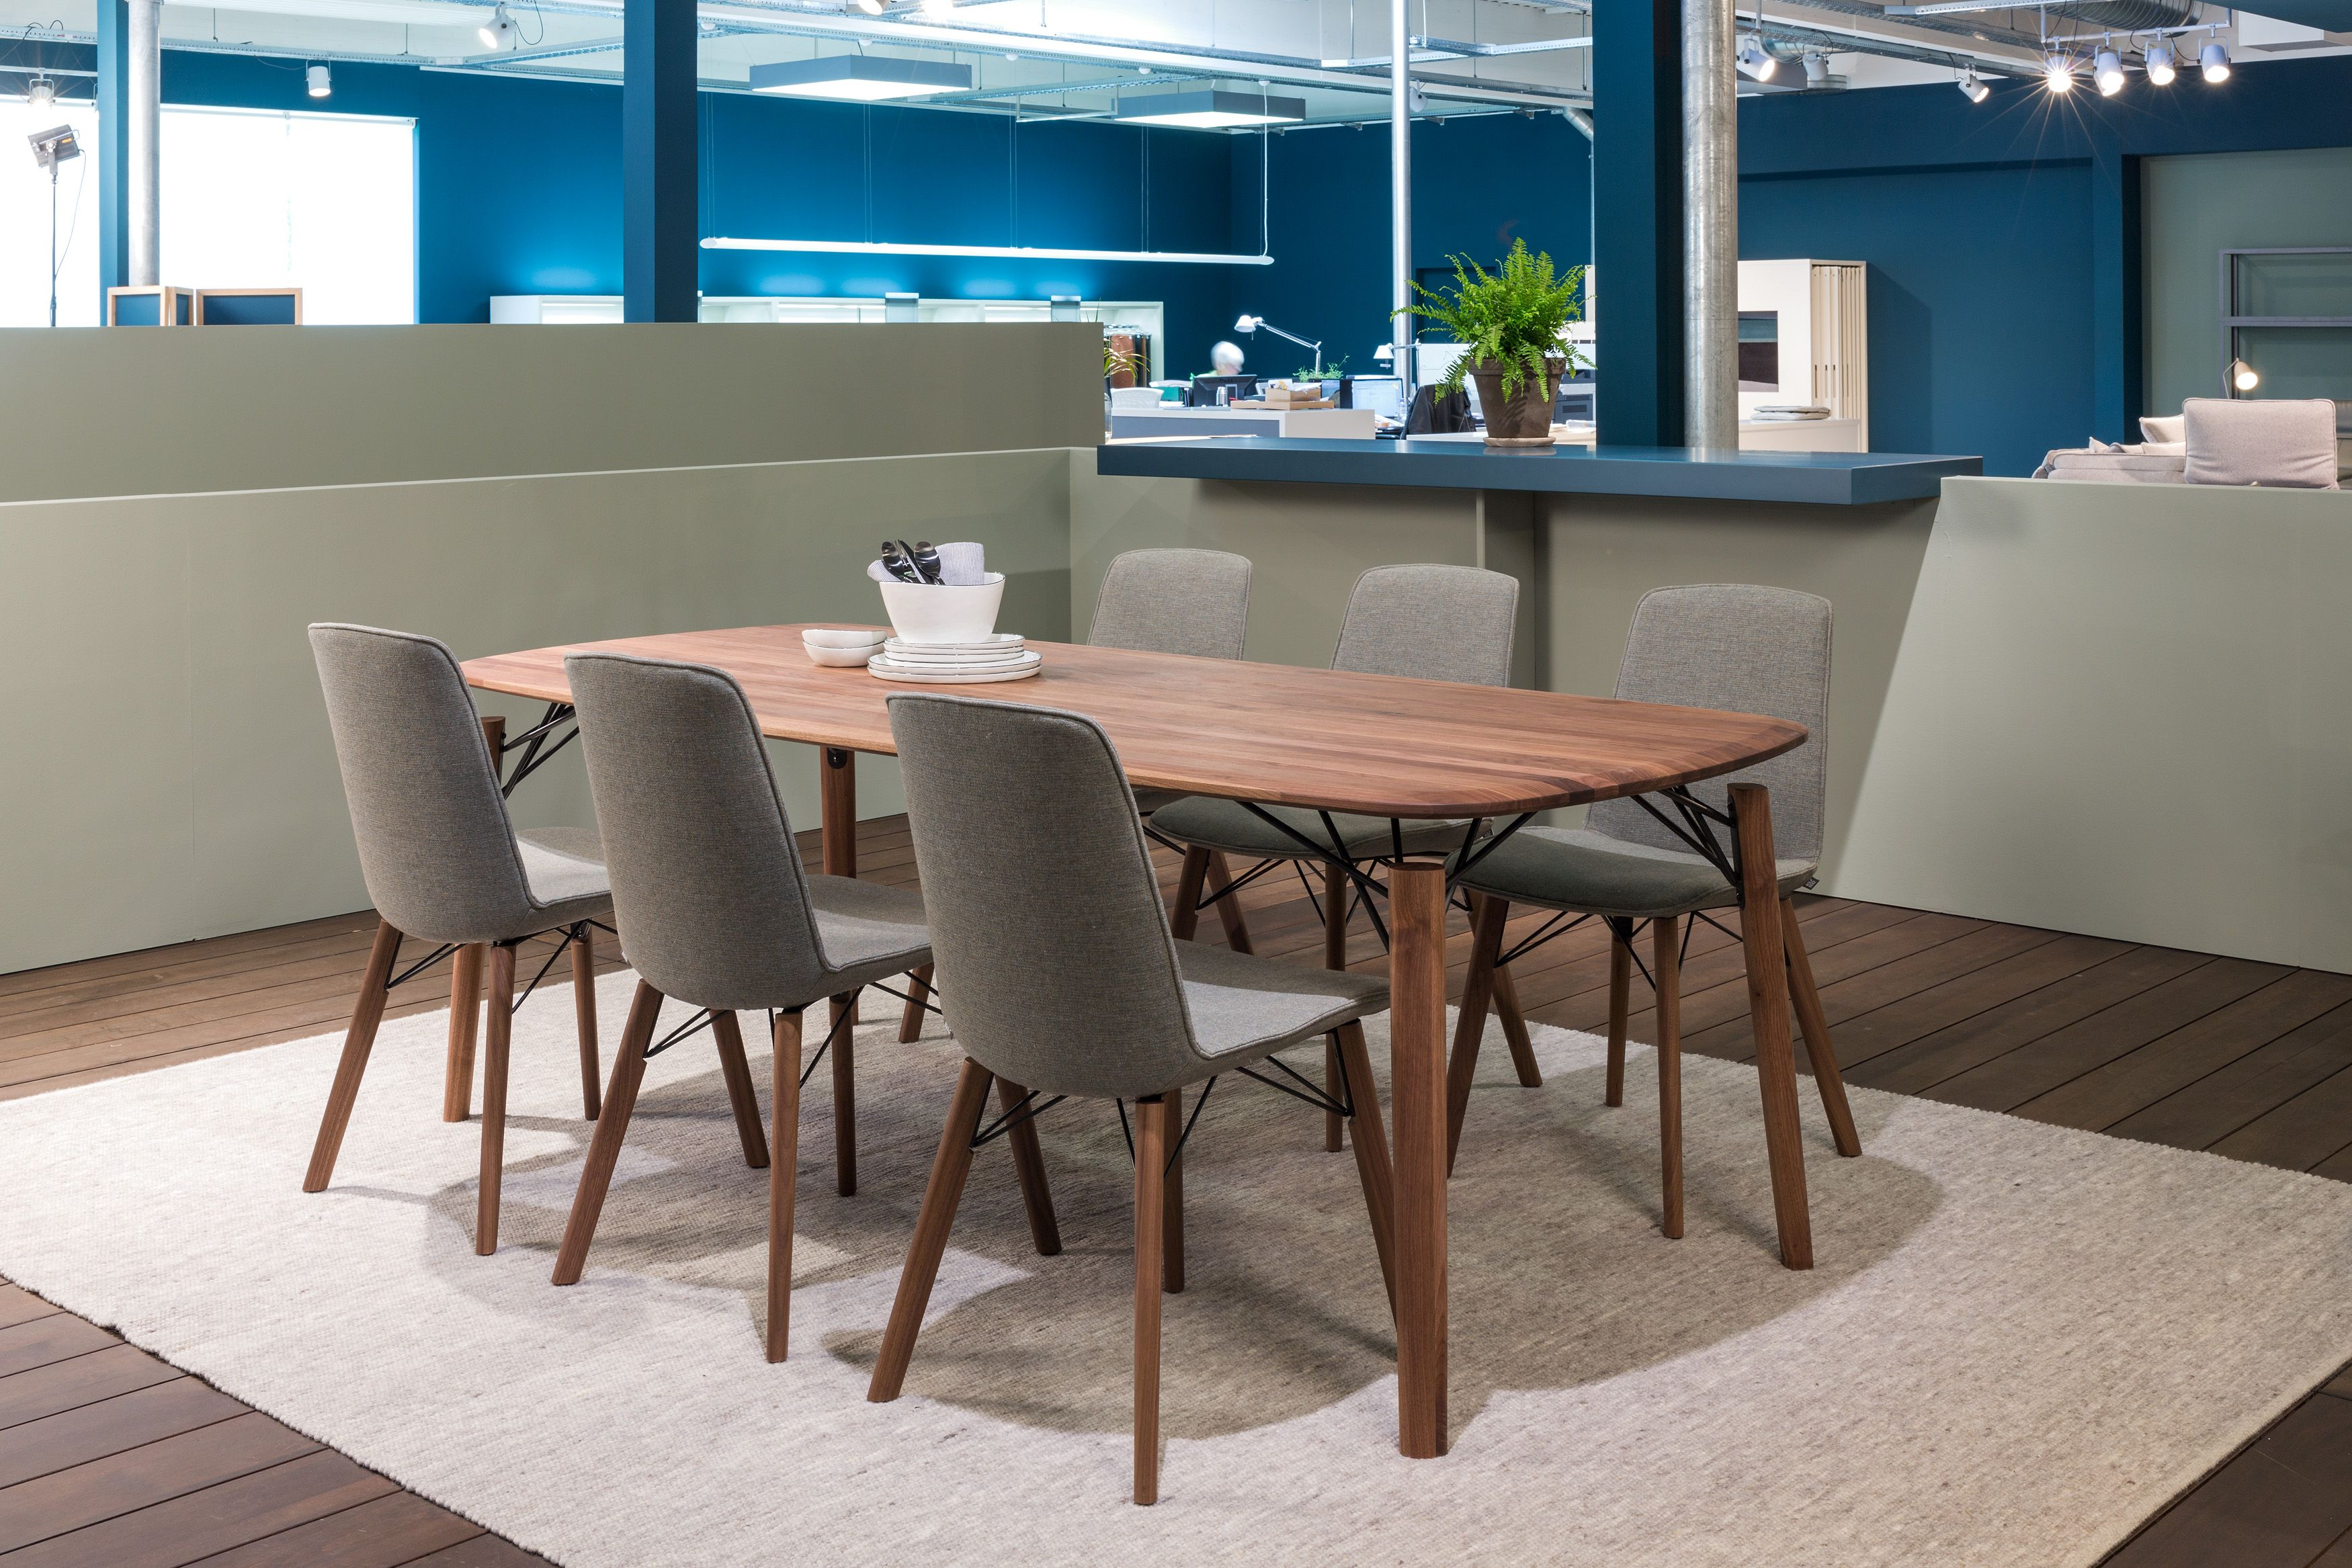 The rolf benz 964 table makes your dining room so special and